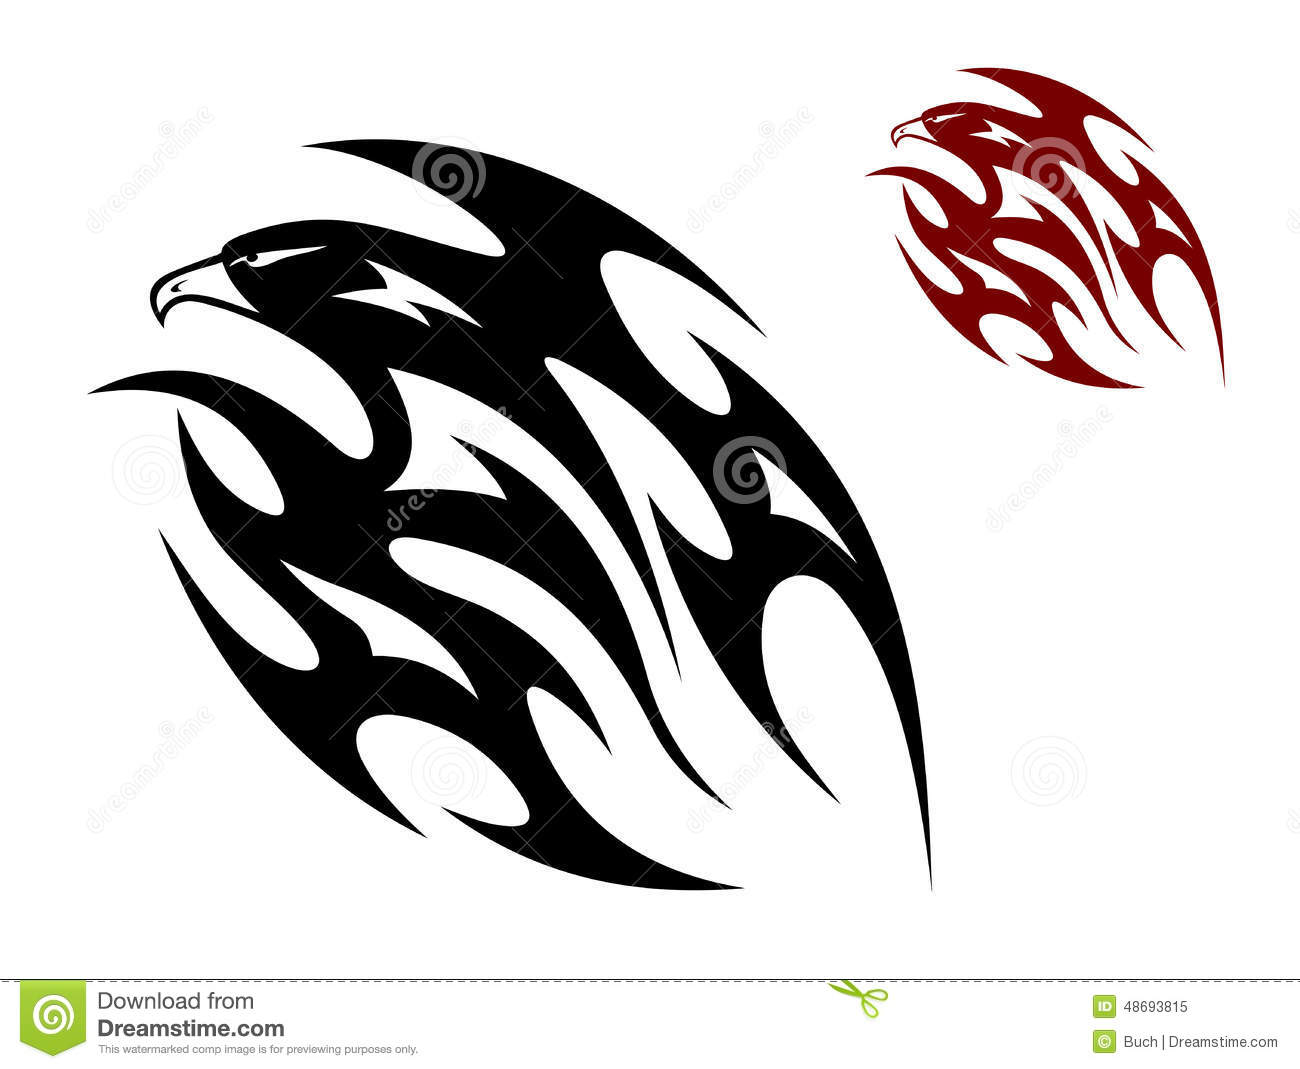 Flying eagle, hawk or falcon bird in tribal style for tattoo design.